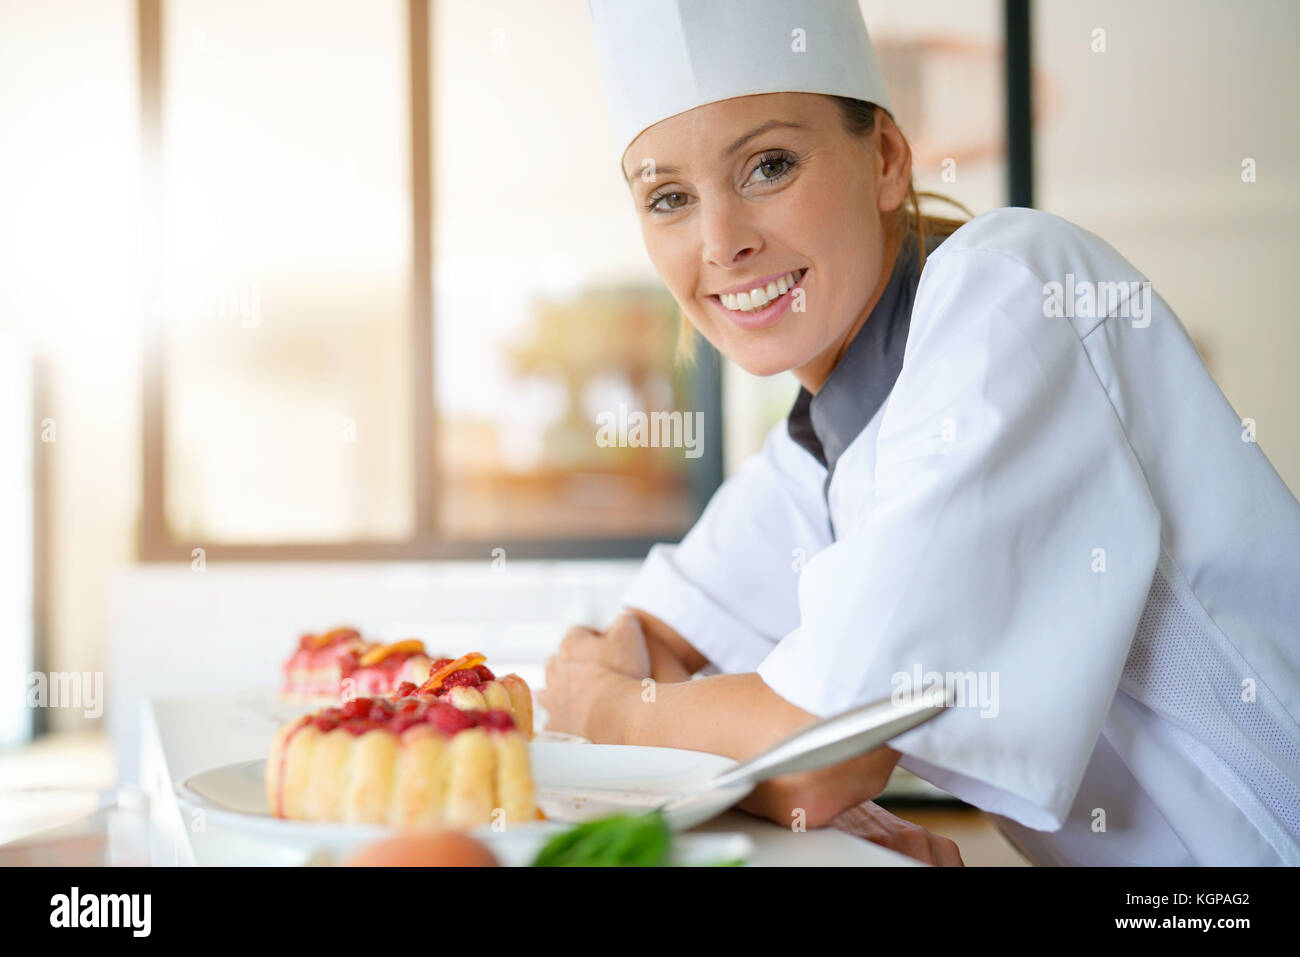 Smiling pastry chef standing in restaurant kitchen - Stock Image